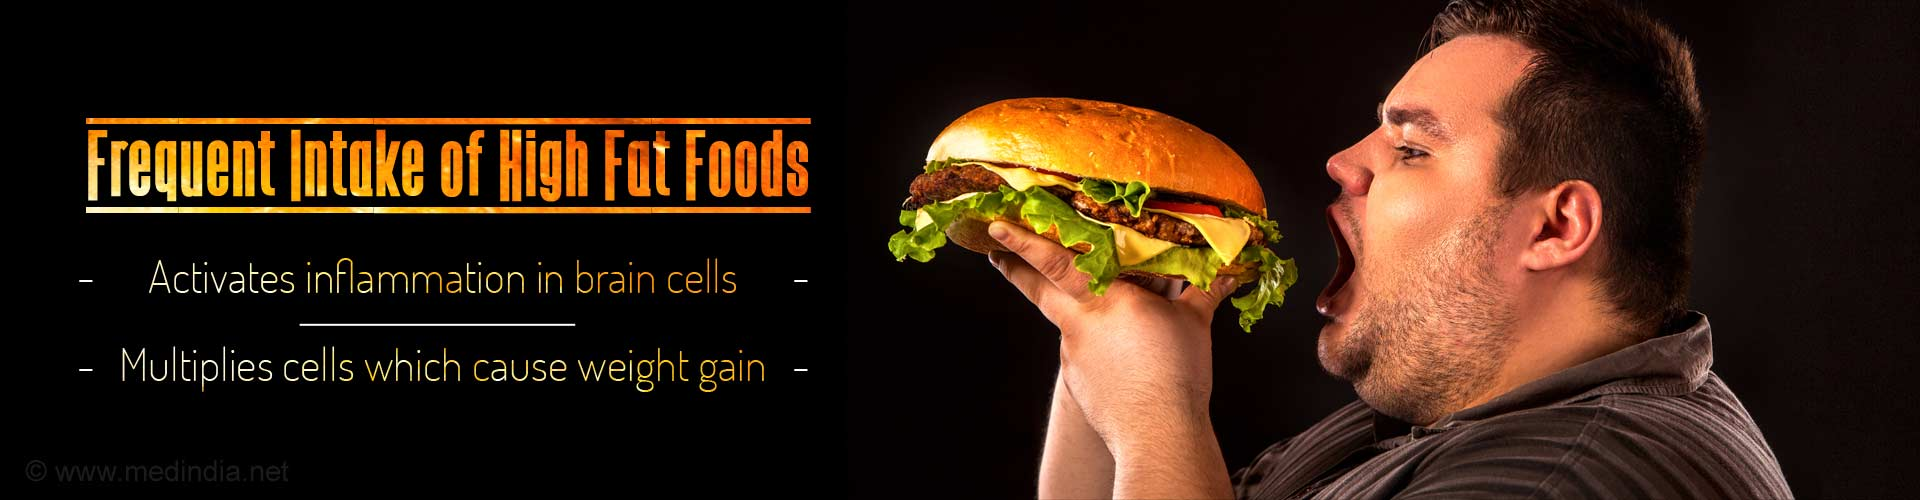 frequent intake of high fat foods - activates inflammation in brain cells - multiplies cells which cause weight gain